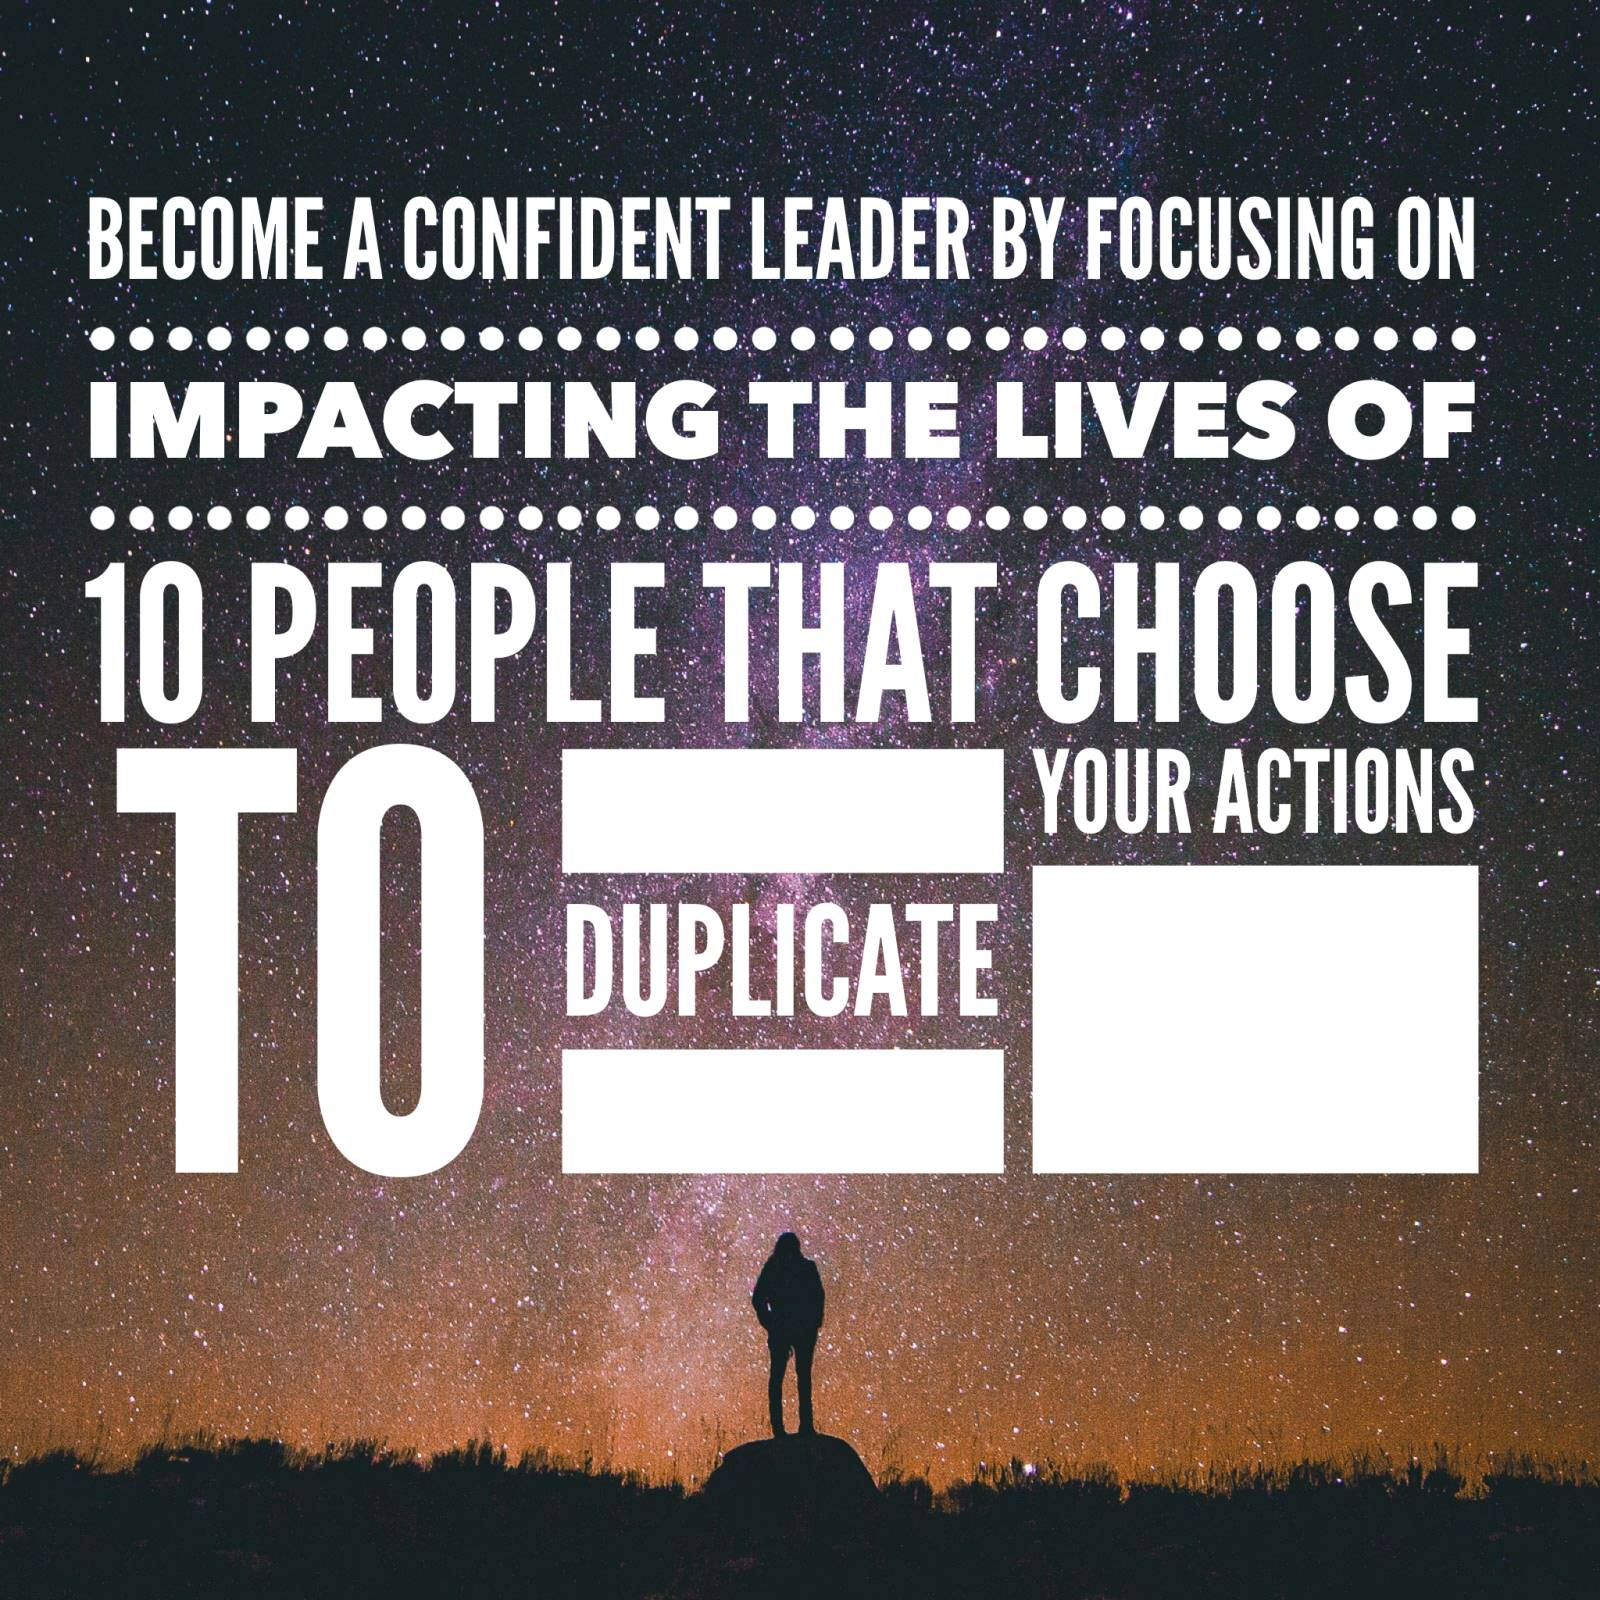 Become Confident by Focusing on Impacting 10 People